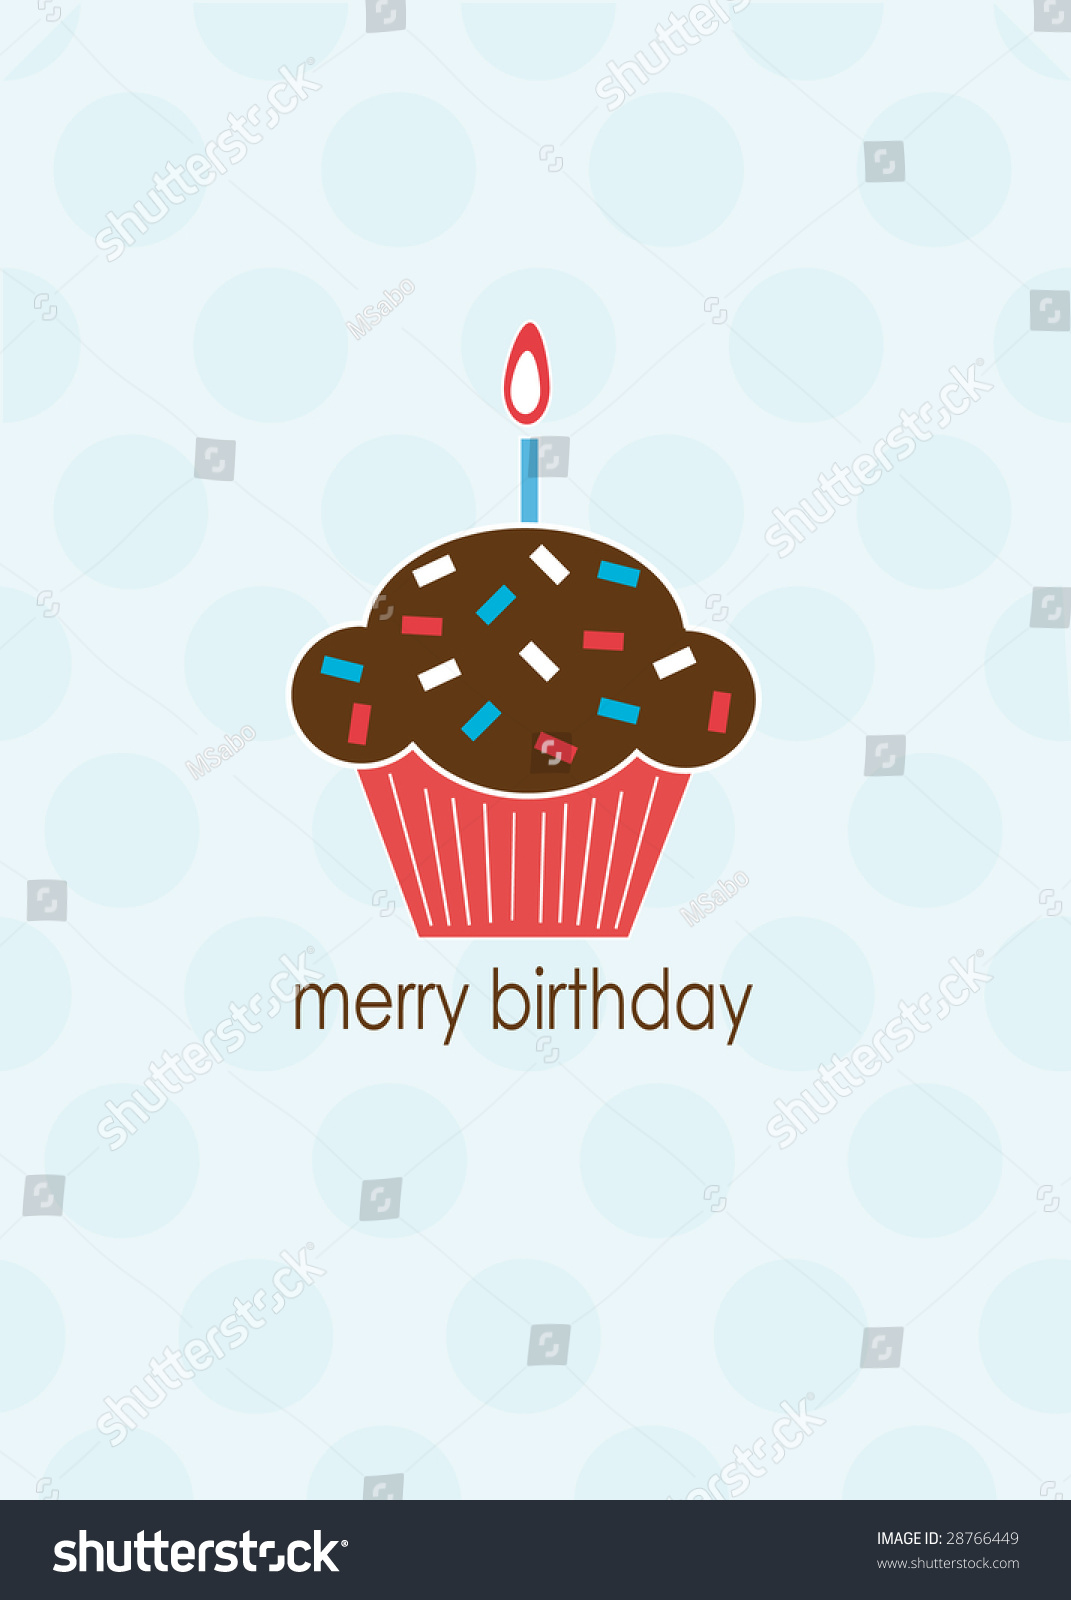 Merry Birthday Card With Cupcake Stock Photo 28766449